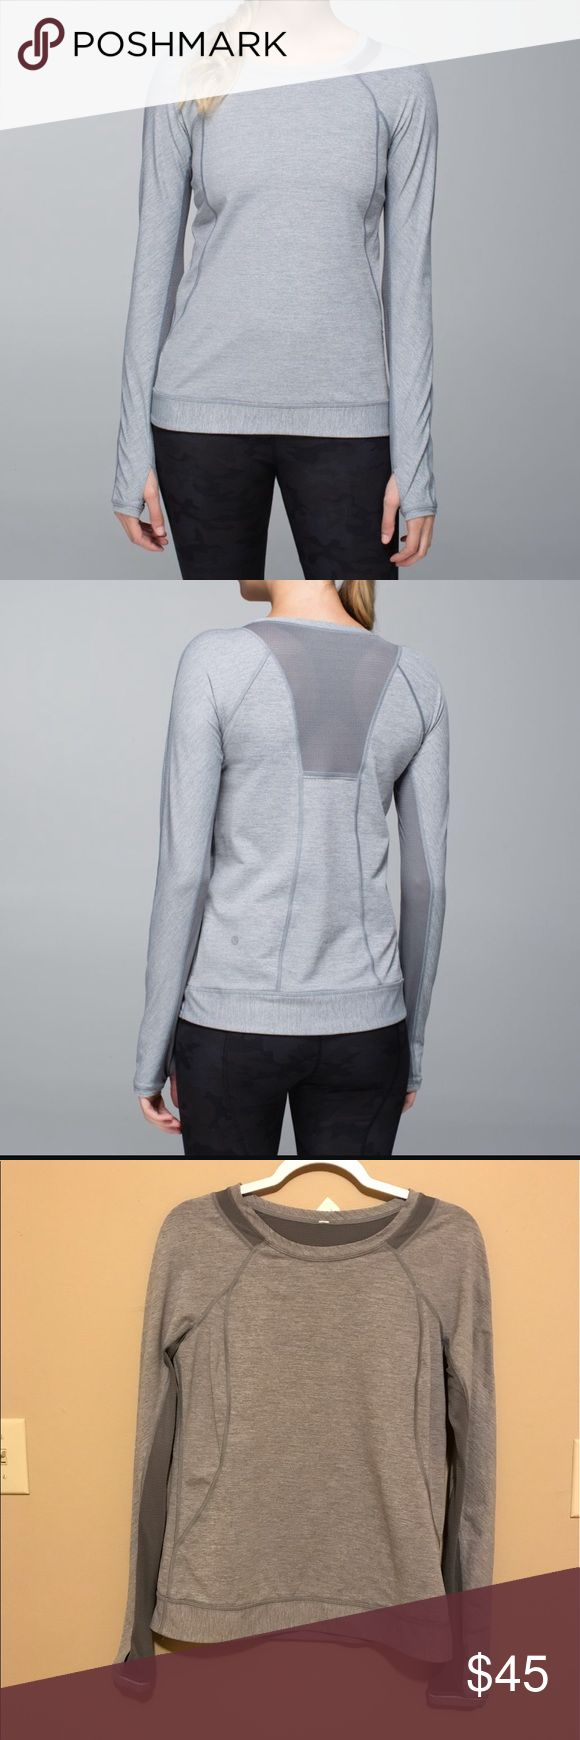 "Lululemon Run for Gold Long Sleeve Top Size 8 GUC Lululemon Run for Gold Long Sleeve top in grey. Luxtreme. Has thumb holes and mesh details around the collar, back, and arms for ventilation. There is reflective ruffle trim around the arms and on the back as well as a small hidden back pocket. Still in great used condition with minimal signs of wear. All tags have been removed but there is a size dot in the pocket to verify it is a size 8.  Approx measurements: Bust 34"" Length: 25"" Waist…"